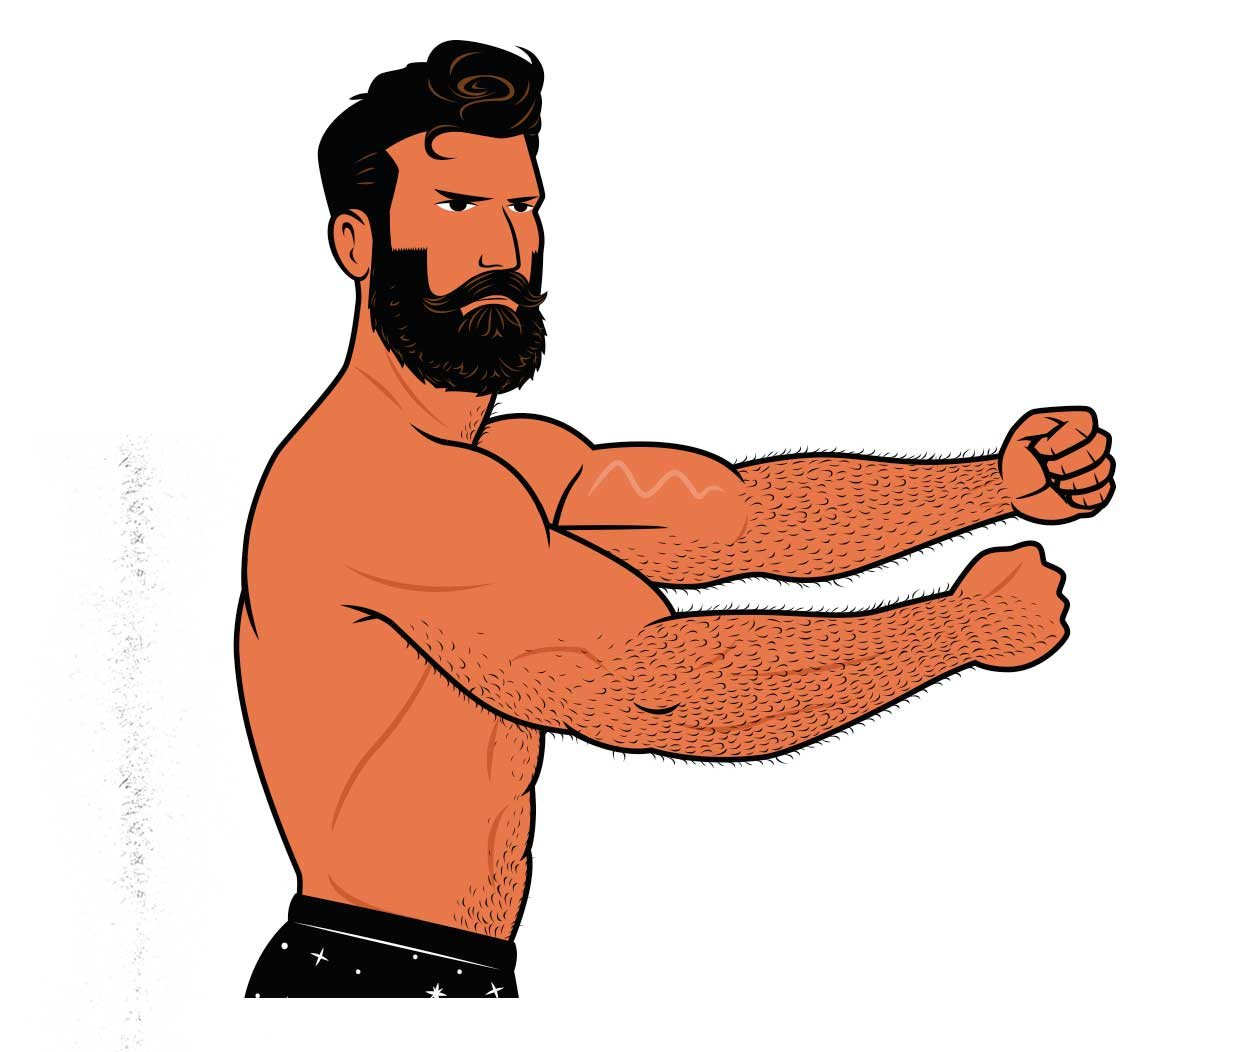 Illustration of a man flexing his arms after doing an arm day workout.